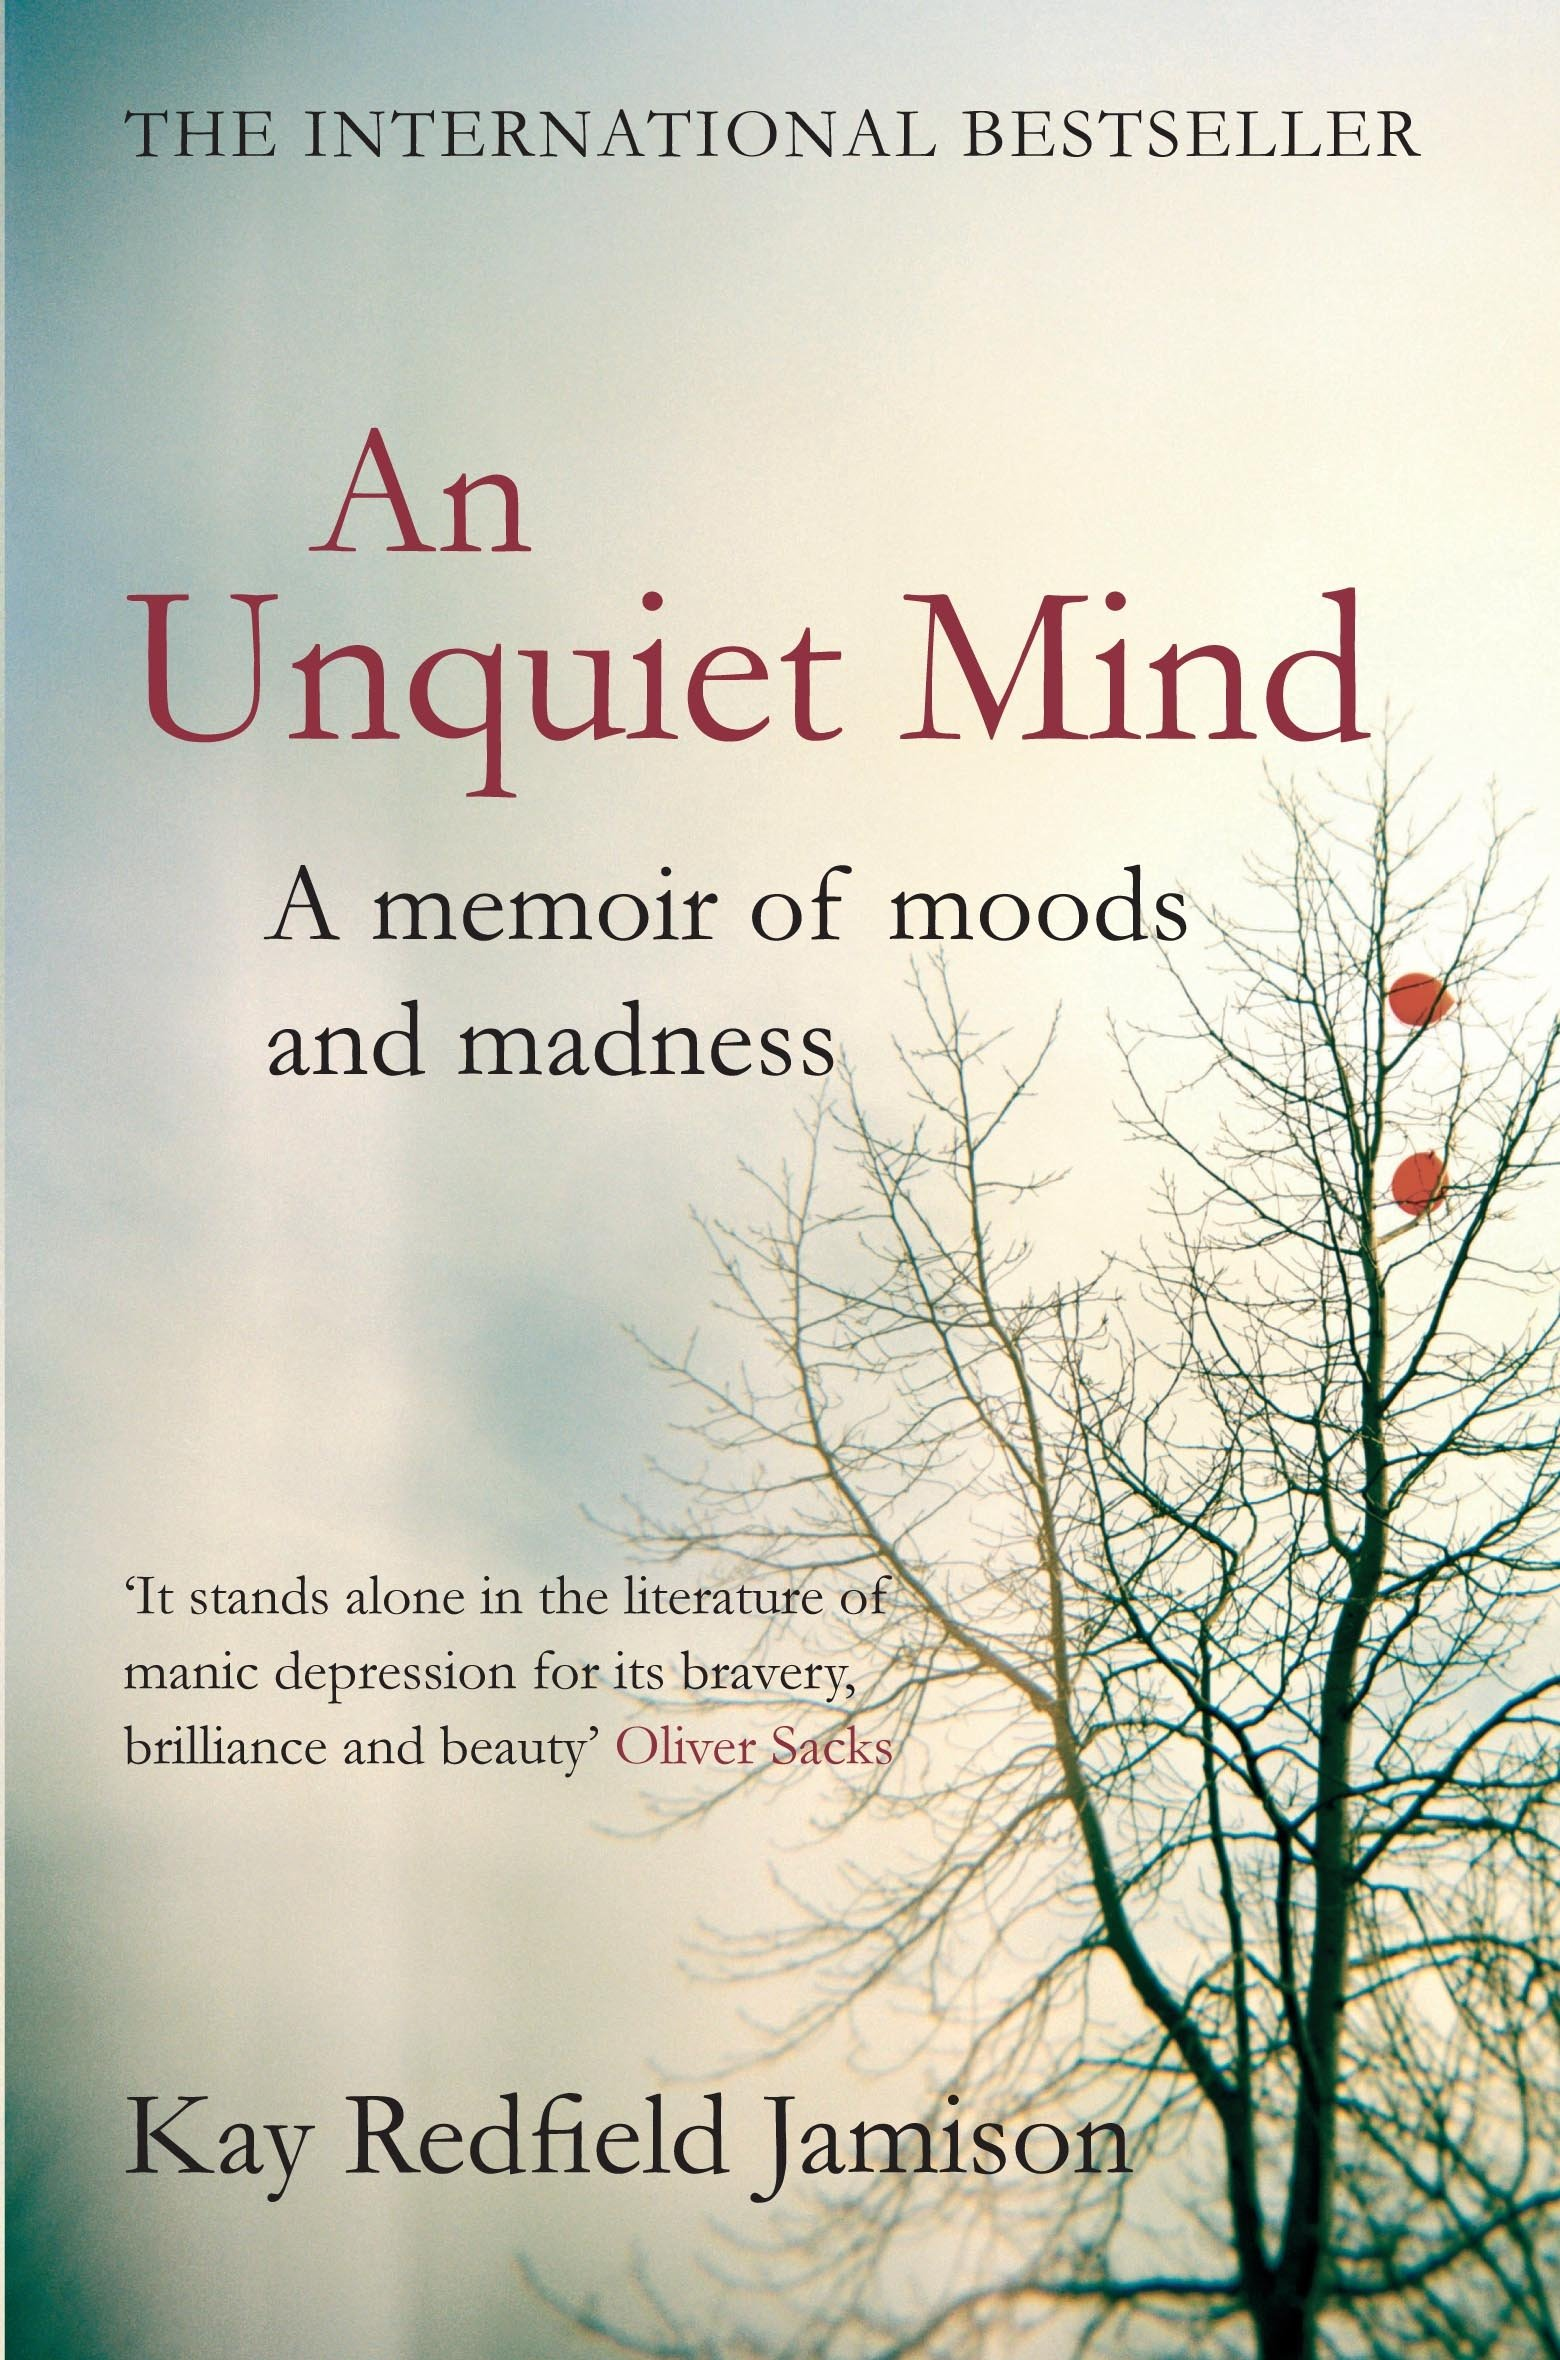 Buy An Unquiet Mind: A memoir of moods and madness Book Online at Low  Prices in India | An Unquiet Mind: A memoir of moods and madness Reviews &  Ratings ...